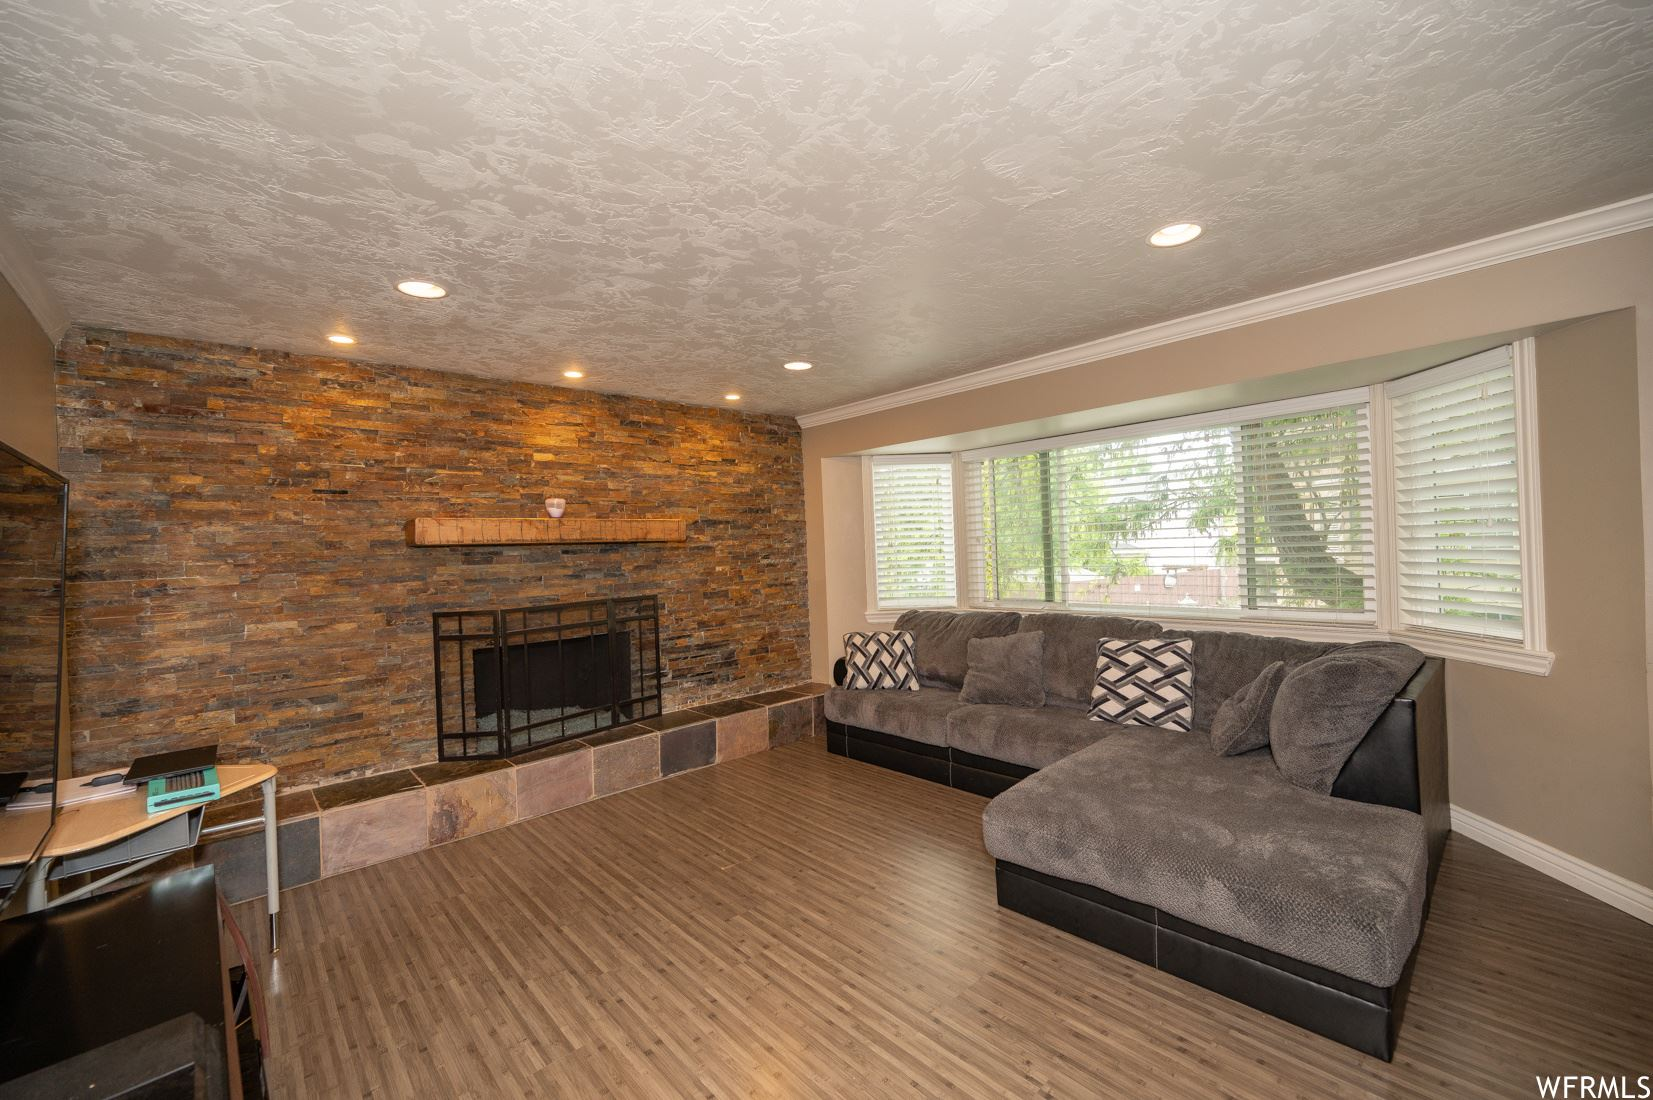 Photo of 2220 E MURRAY HOLLADAY ROAD #229, Holladay, UT 84117 (MLS # 1744717)